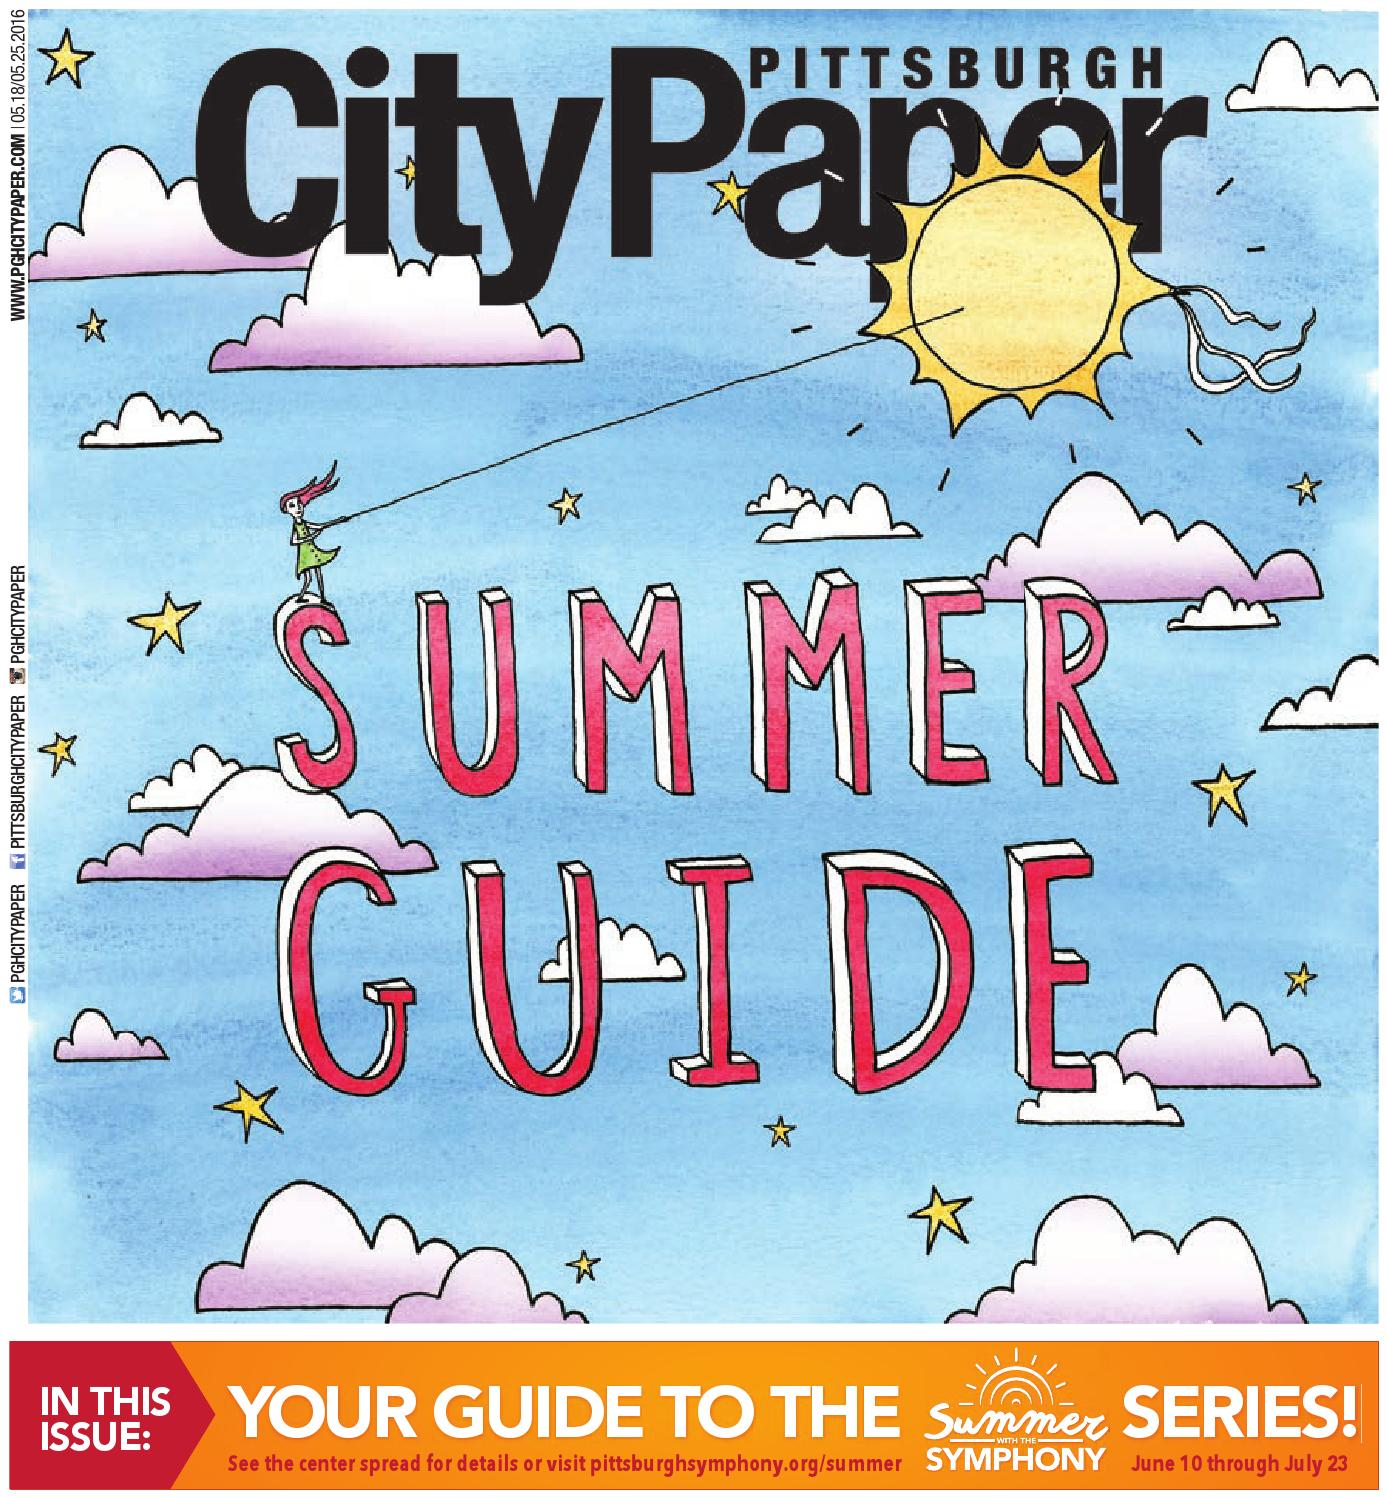 Summer Guide 2016 - Pittsburgh City Paper